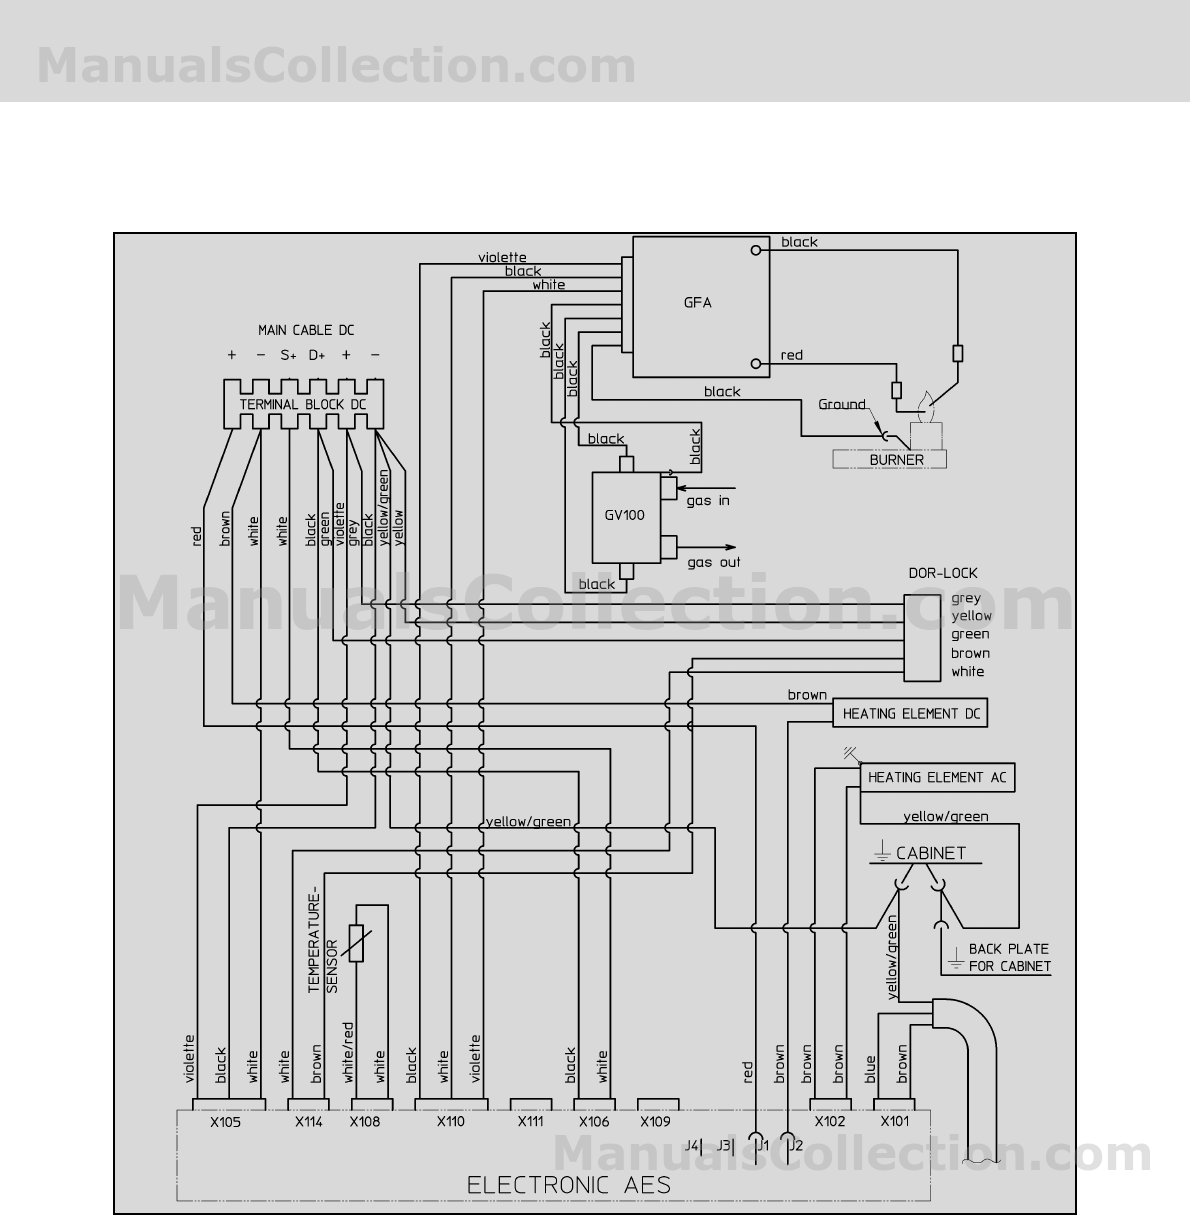 rv fridge wiring diagram onan generator marine dometic rm8501 29 images